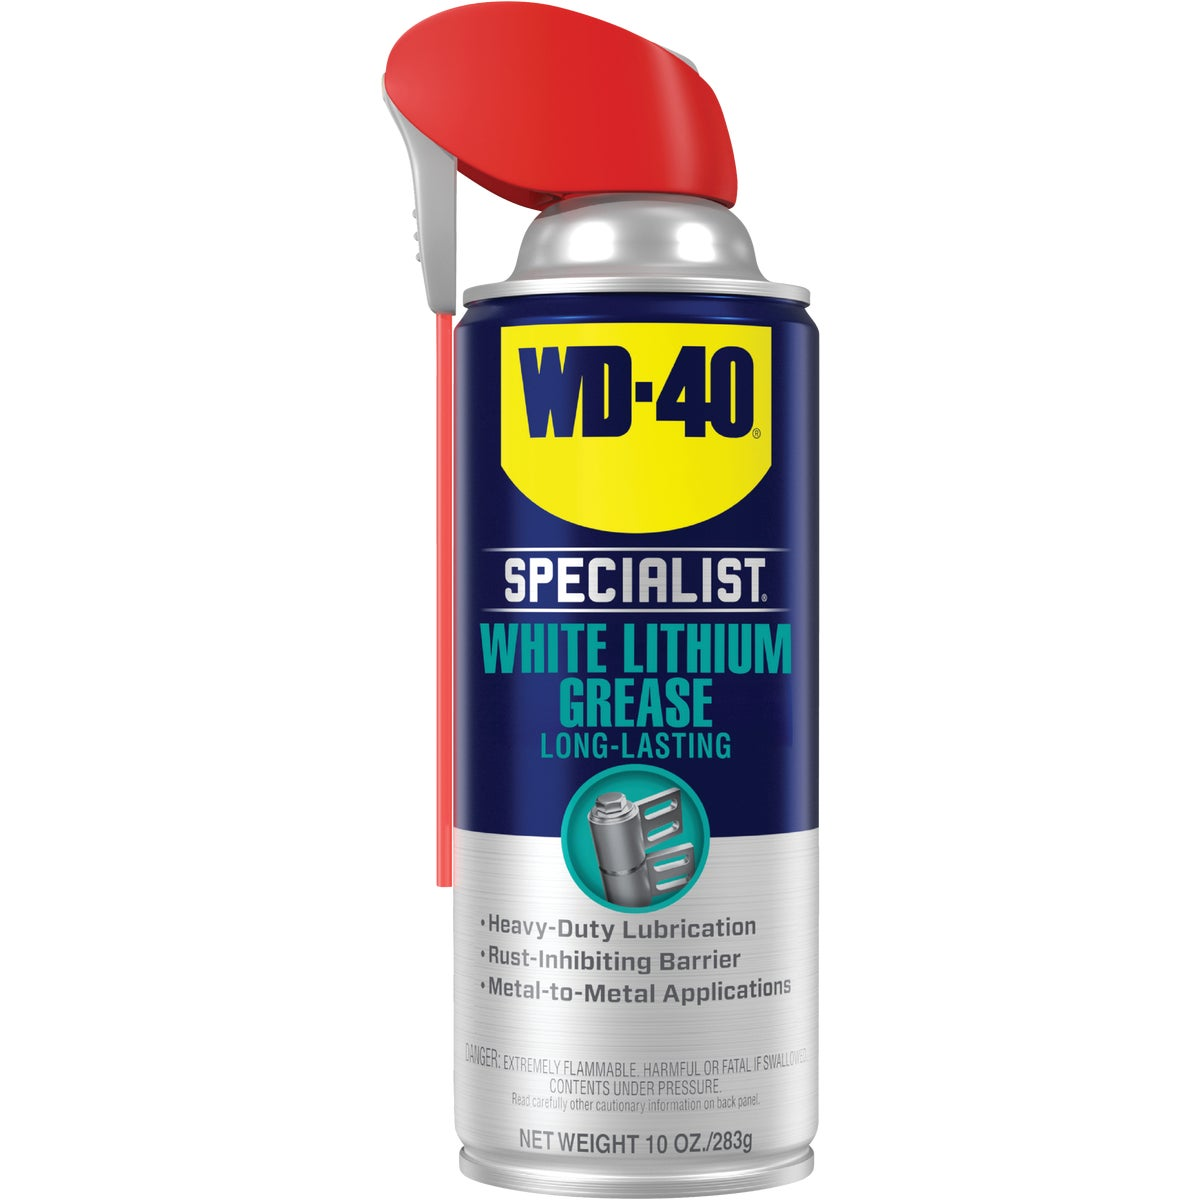 10OZ WHT LITHIUM GREASE - 300028 by W D 40 Company